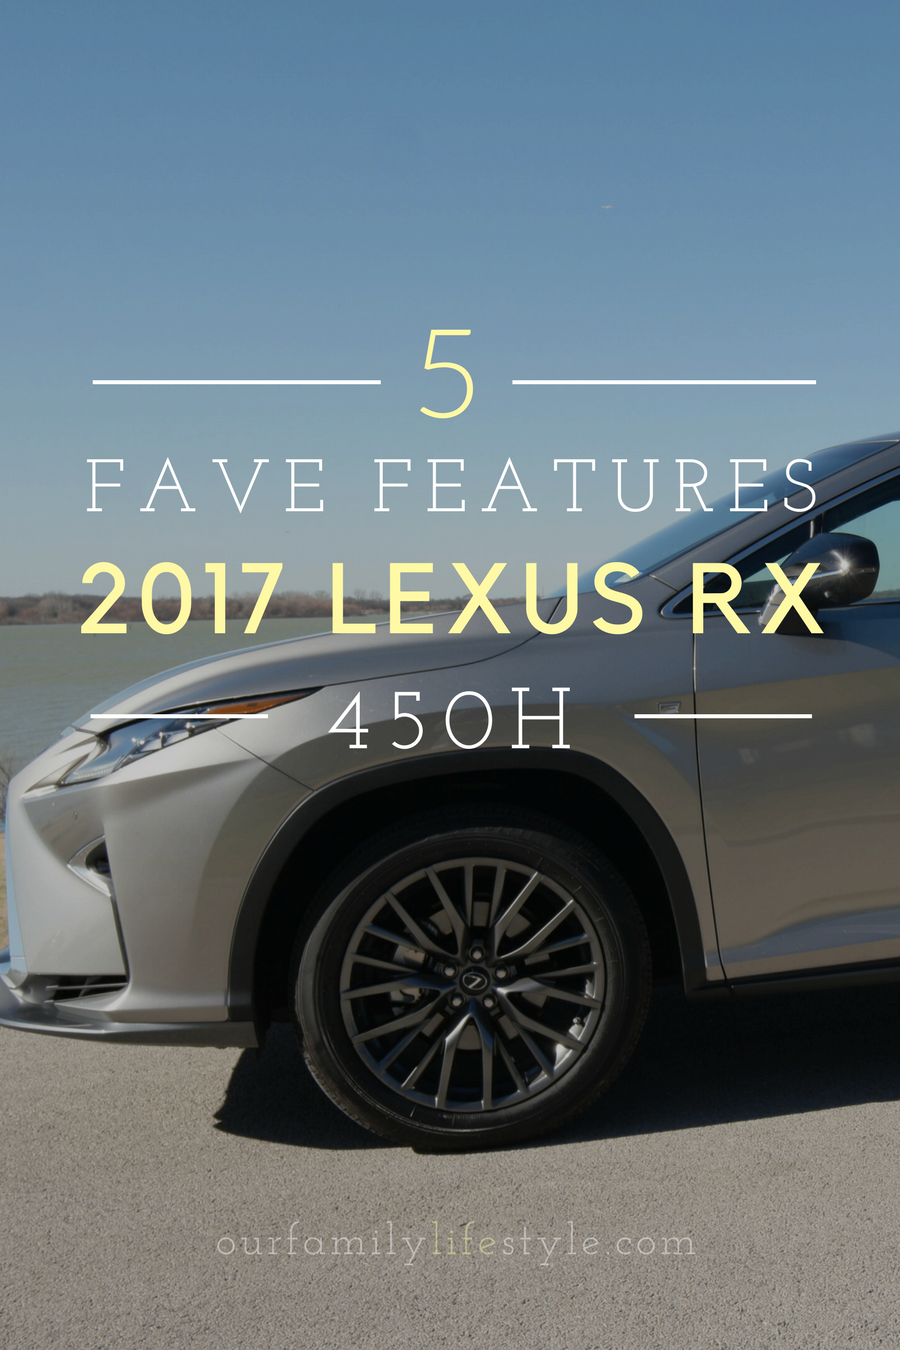 favorite features of 2017 Lexus RX 450h